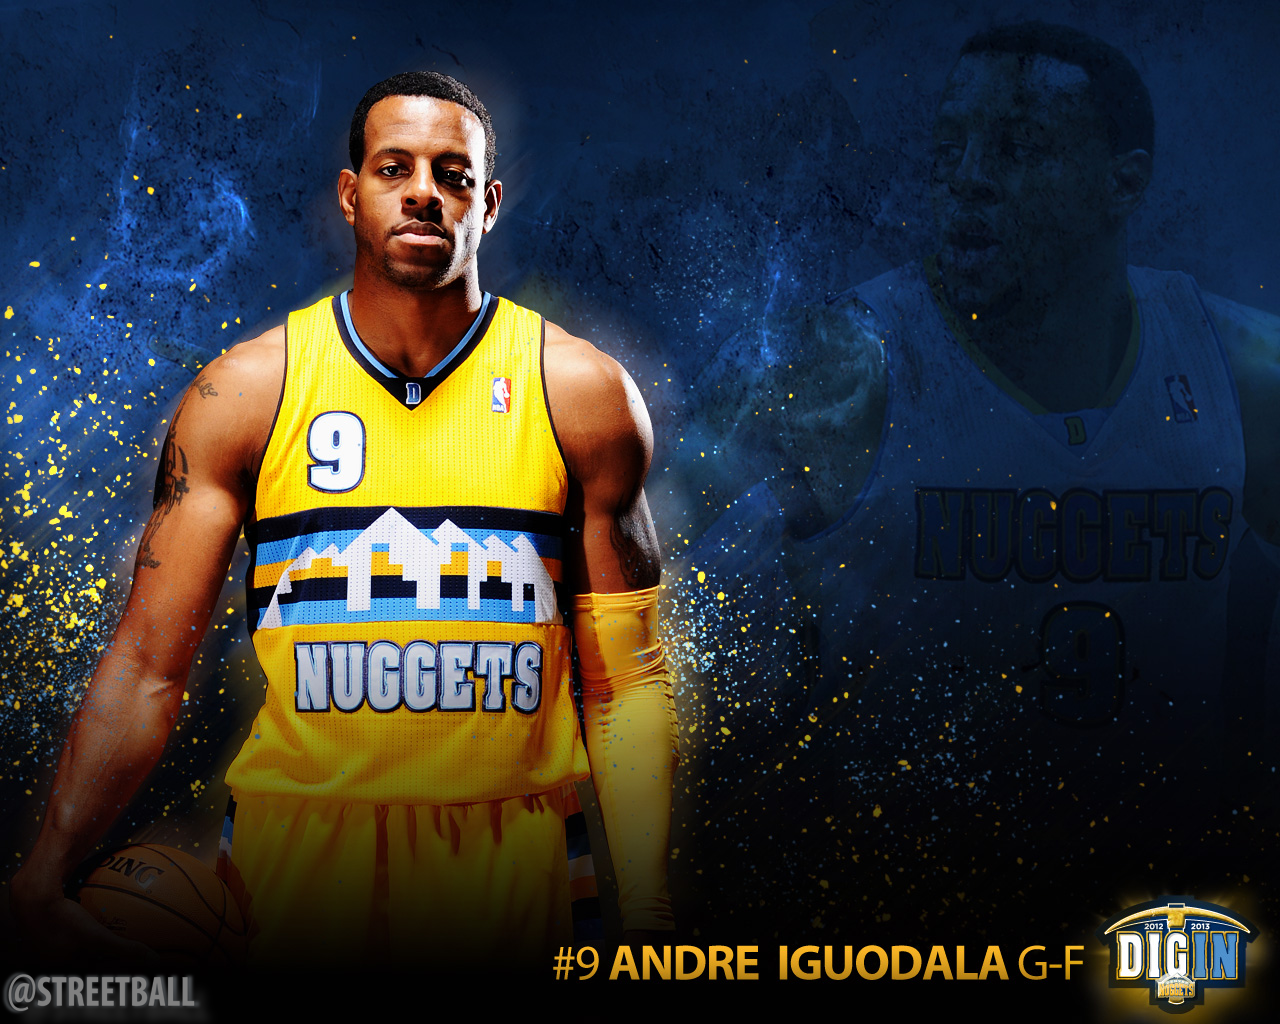 Andre Iguodala Wallpapers High Resolution And Quality Download